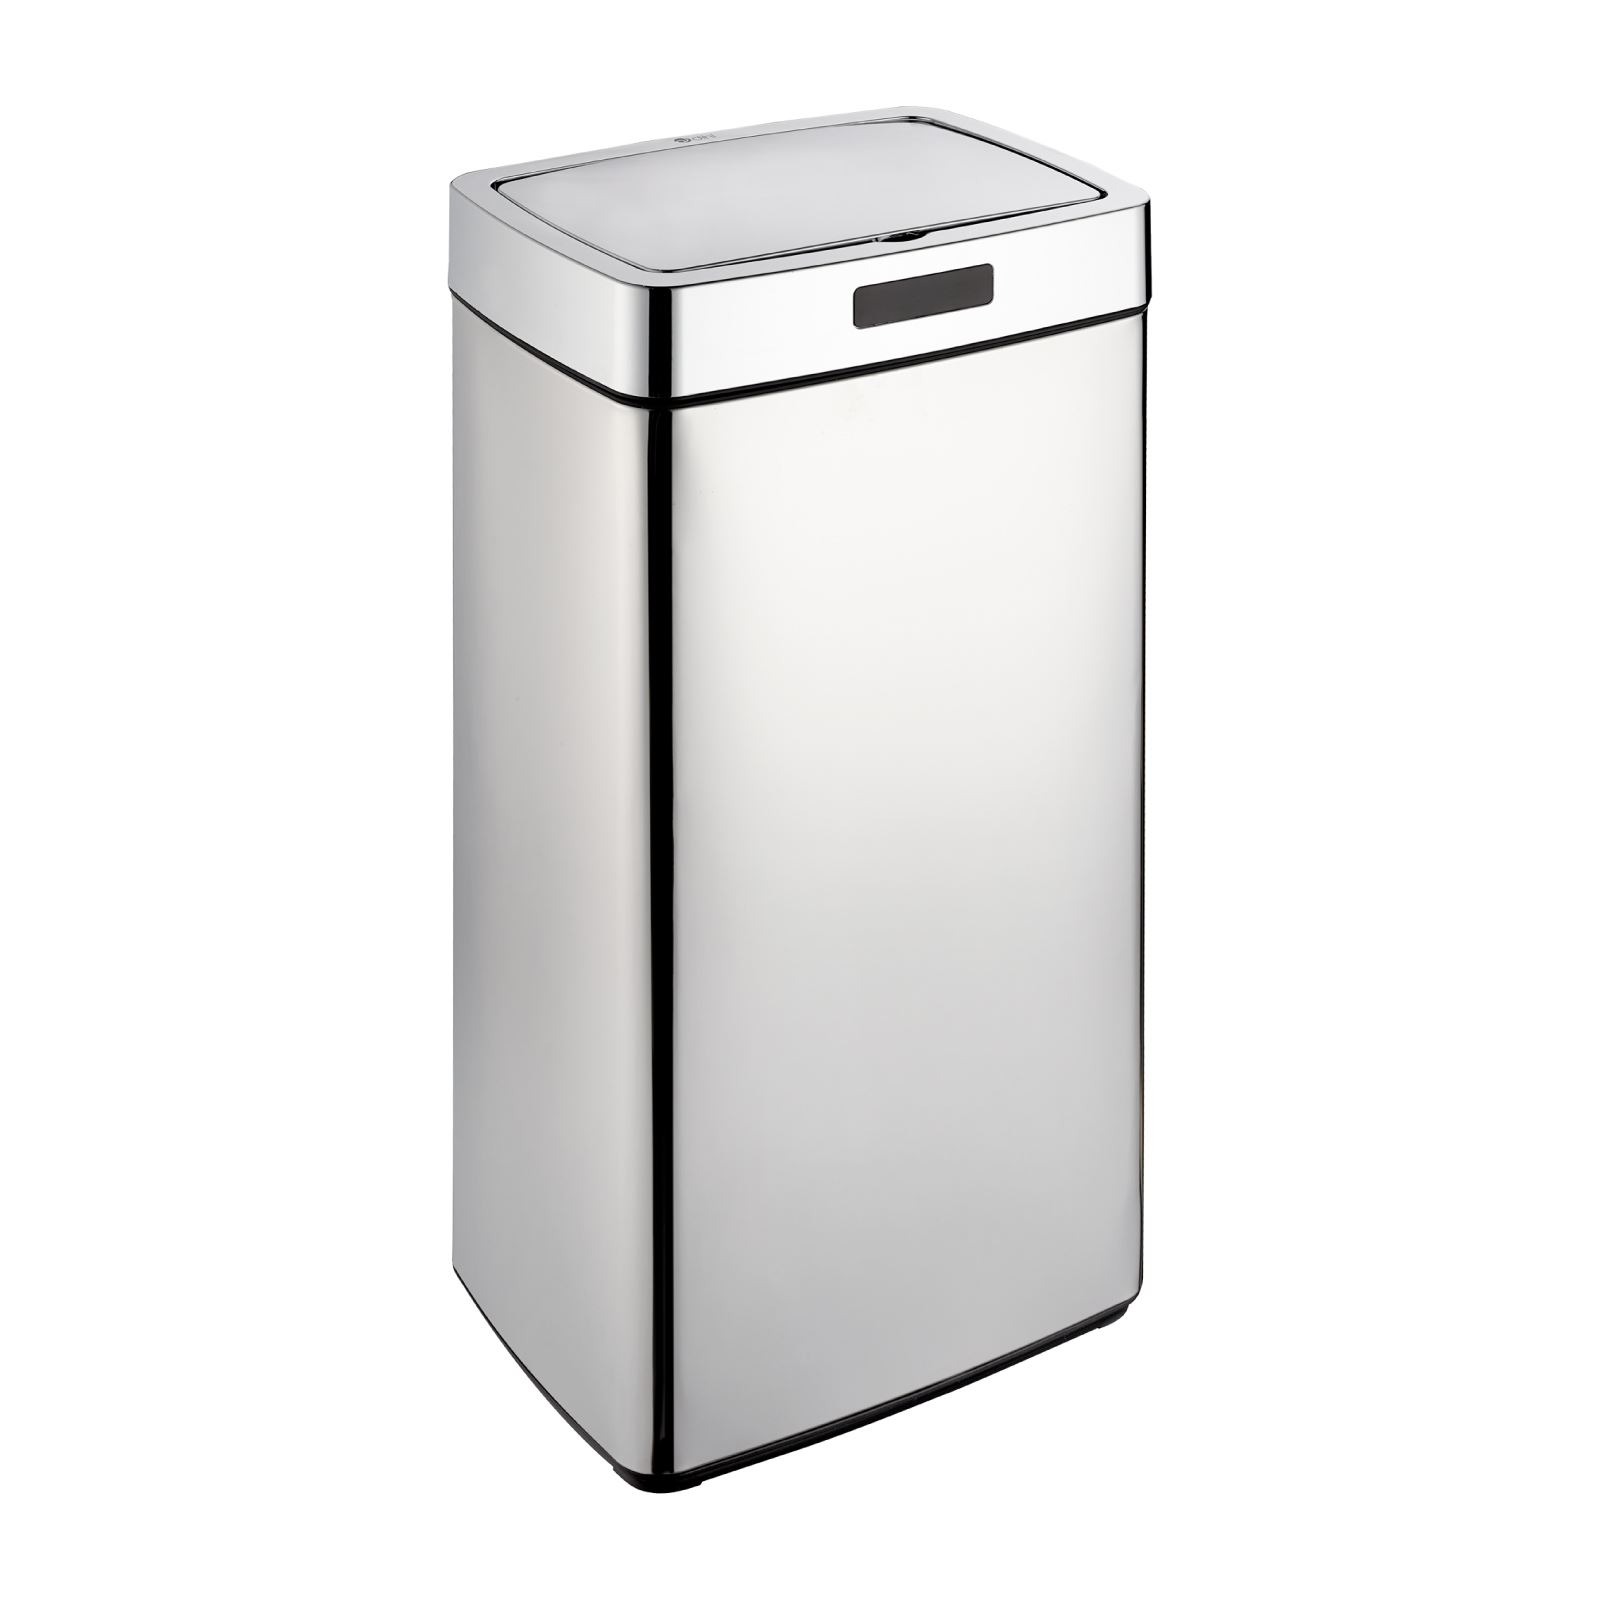 Kitchen Waste Bins: Dihl 28L 35L 45L Mono Rectangle Chrome Sensor Kitchen